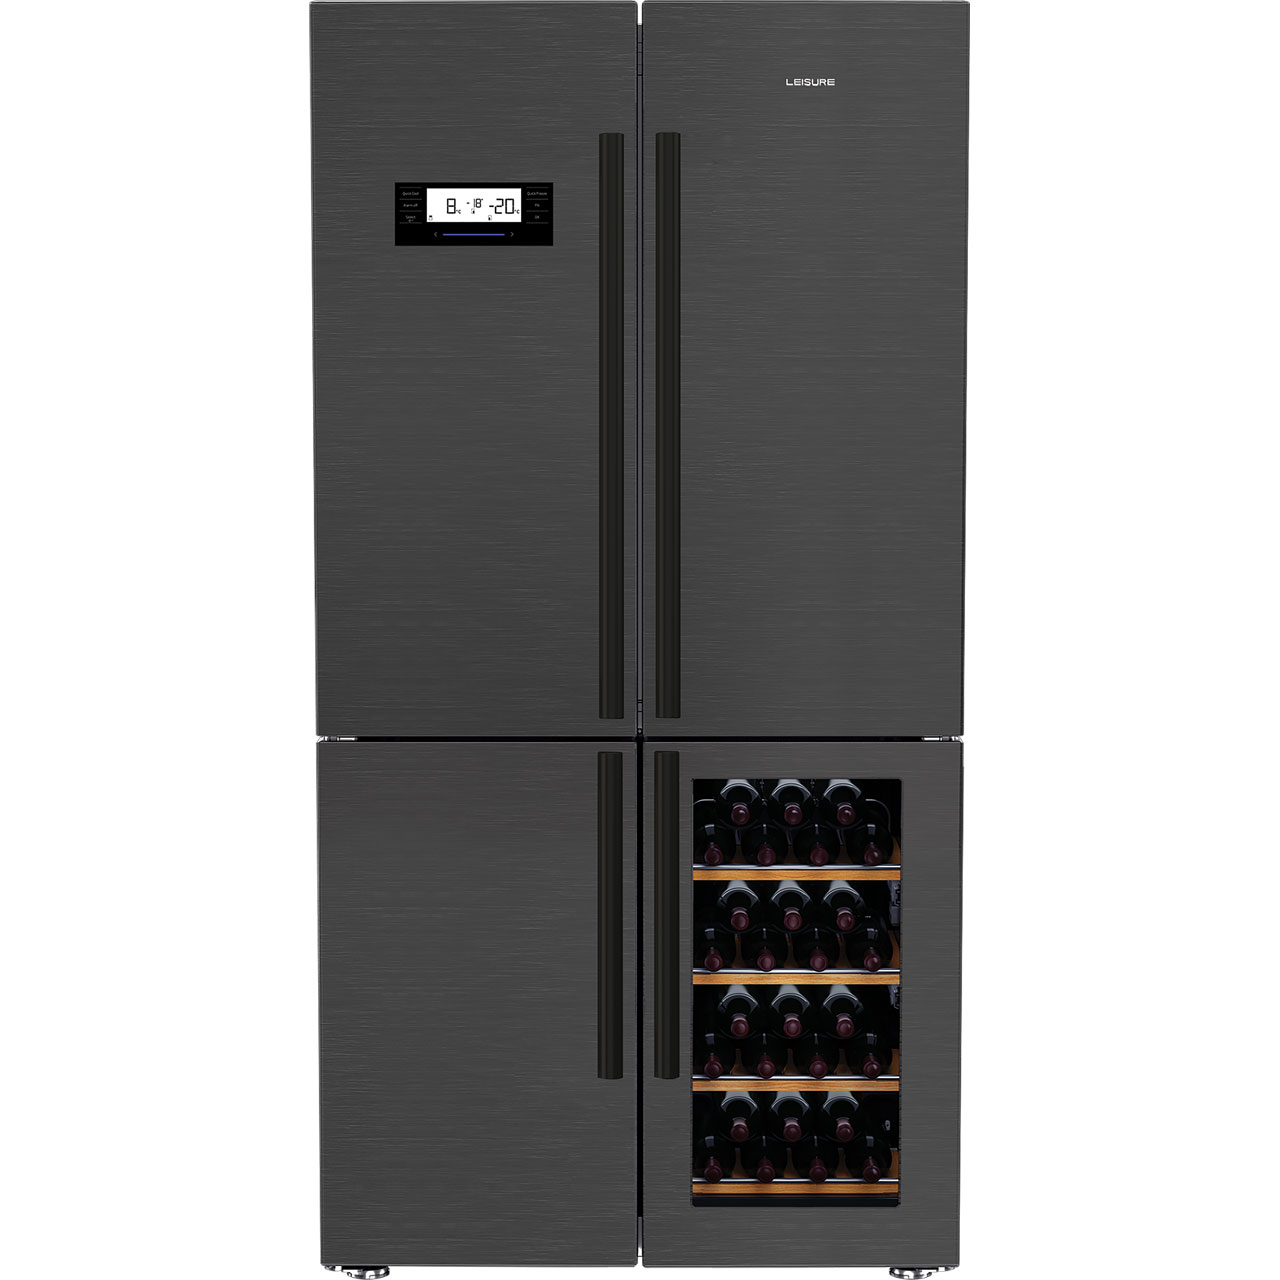 Fridge Freezer Leisure Lm16251wz American Fridge Freezer Dark Steel A Rated